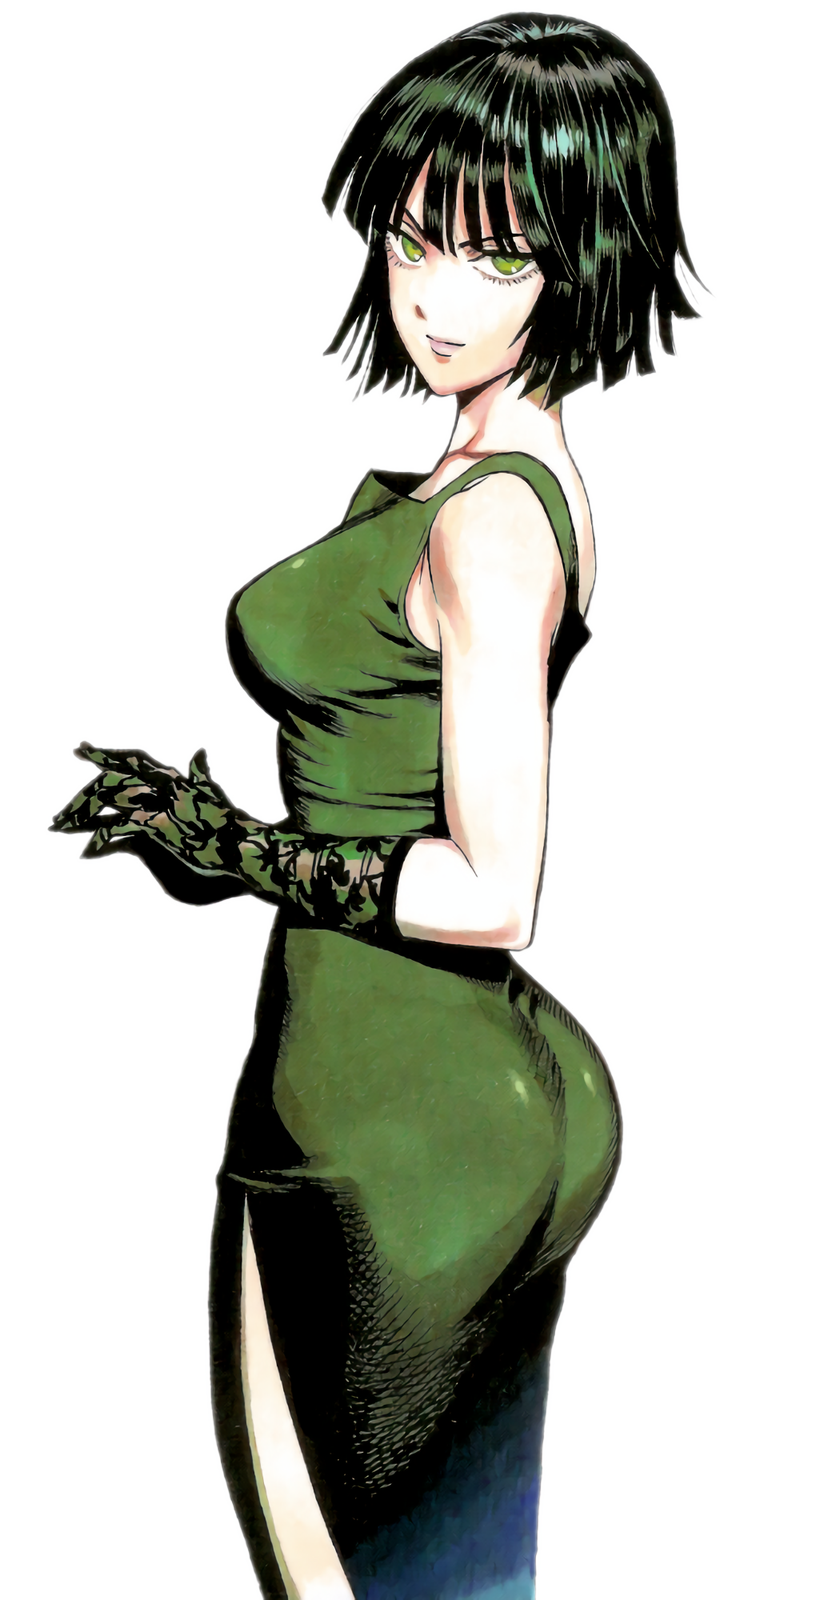 """A transparent render of Fubuki from """"One Punch Man"""